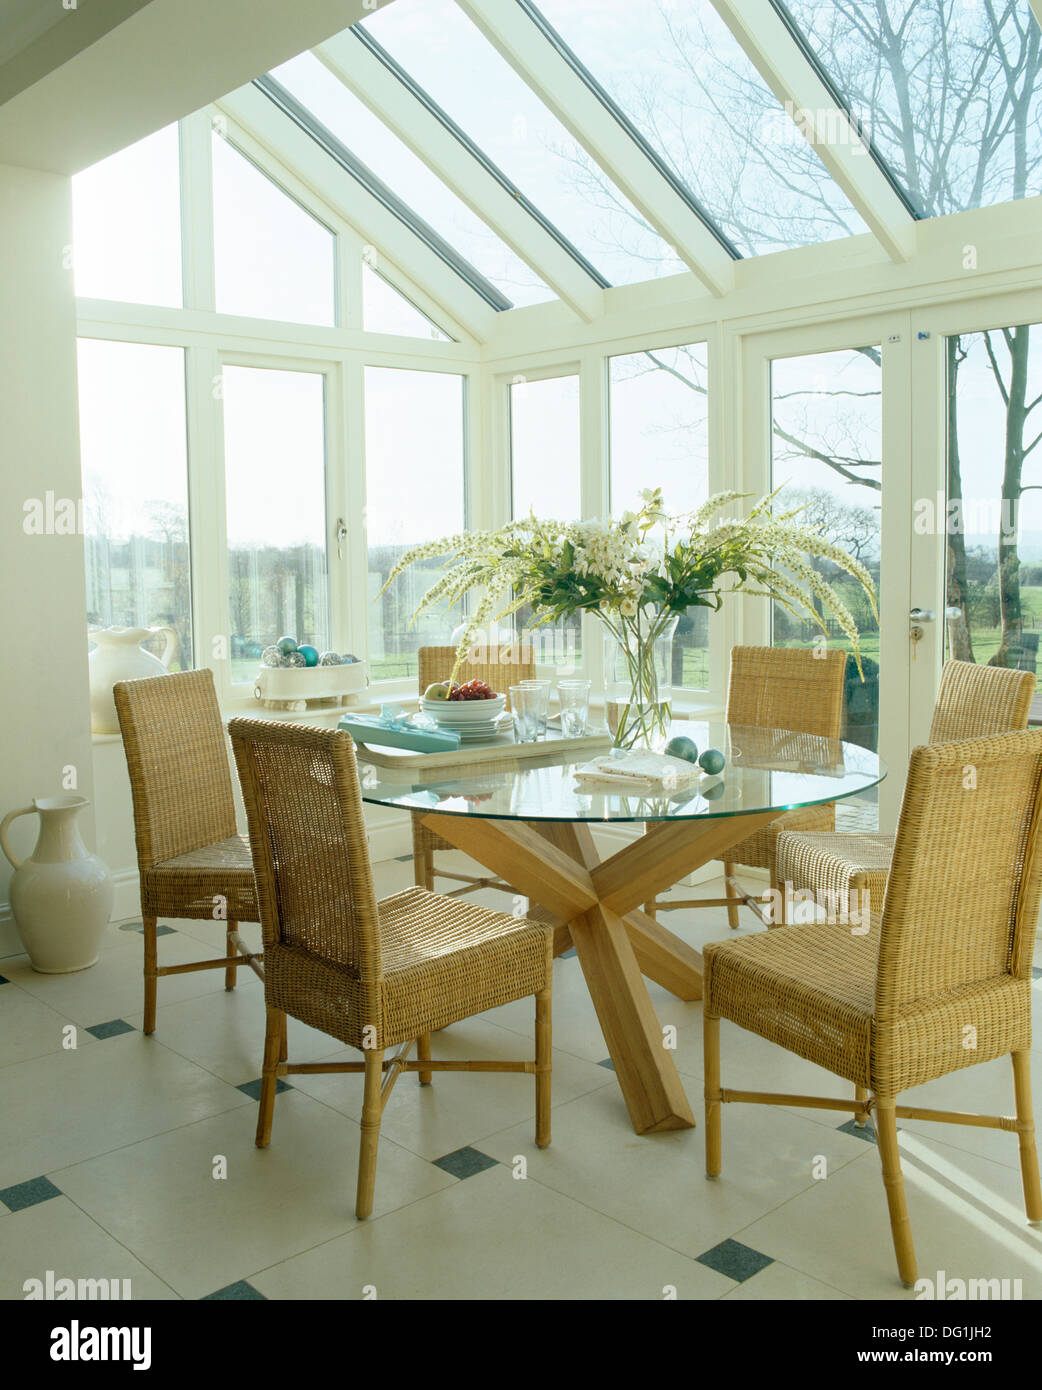 High Back Wicker Chairs And Glass Table In Modern